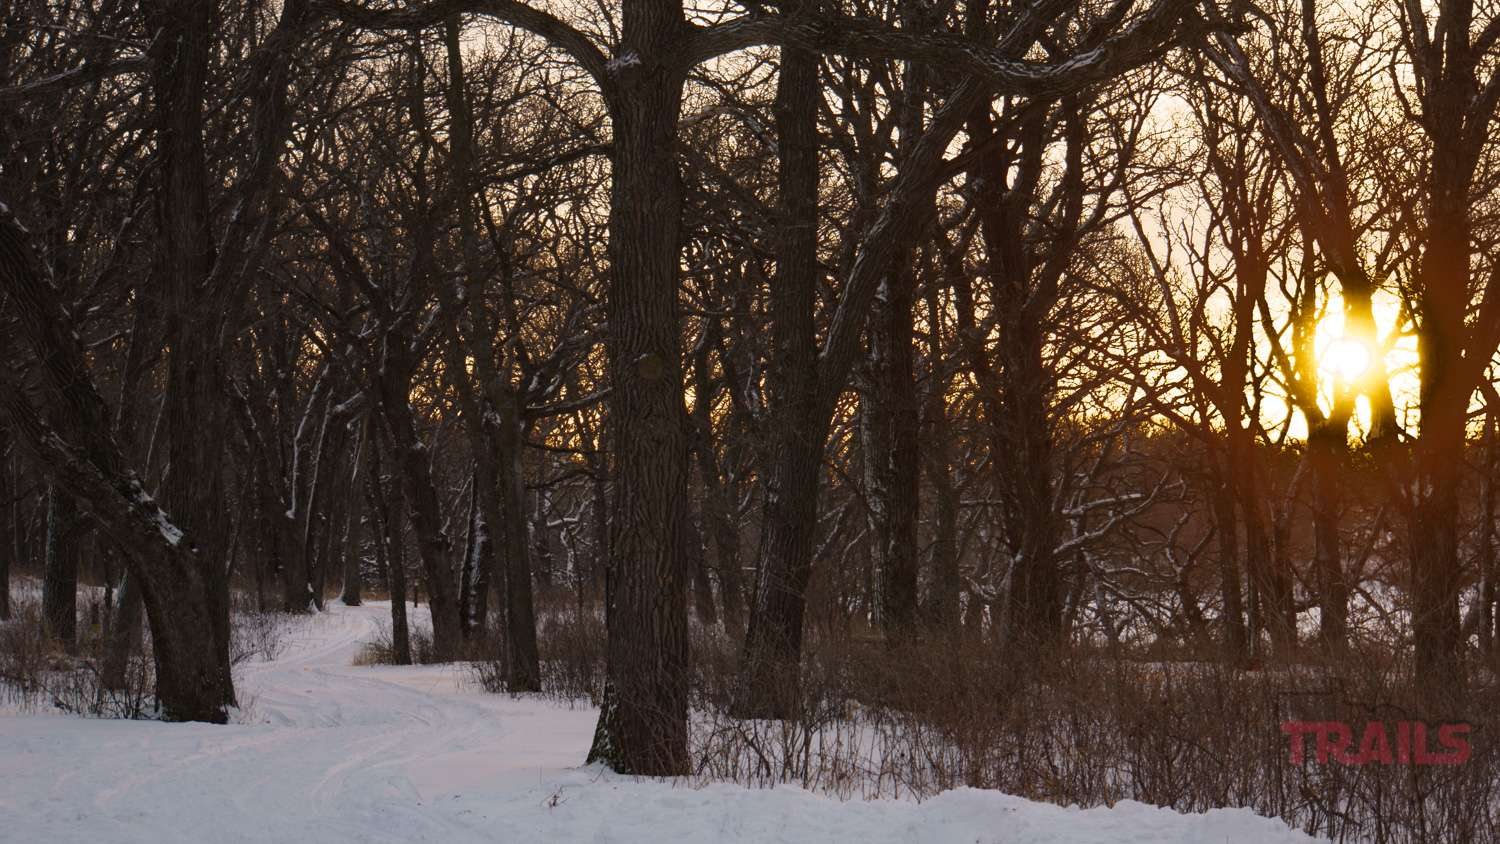 Sunset in a wintery forest